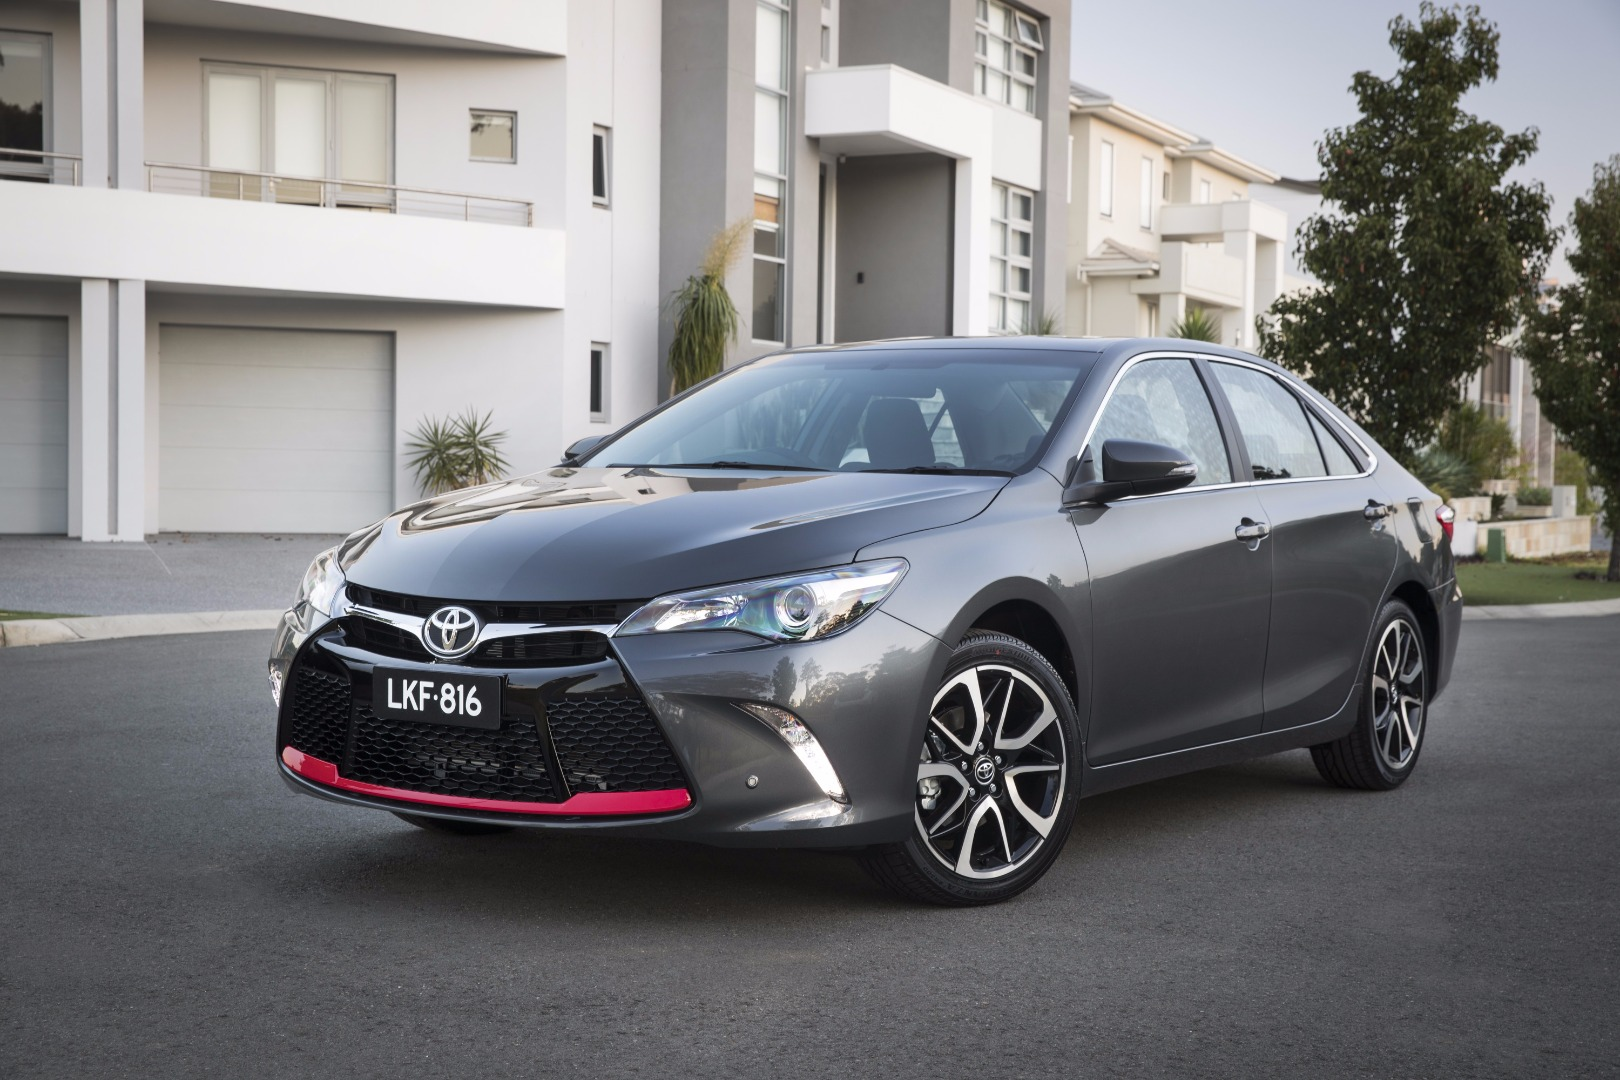 news refreshed toyota camry range on sale in june. Black Bedroom Furniture Sets. Home Design Ideas